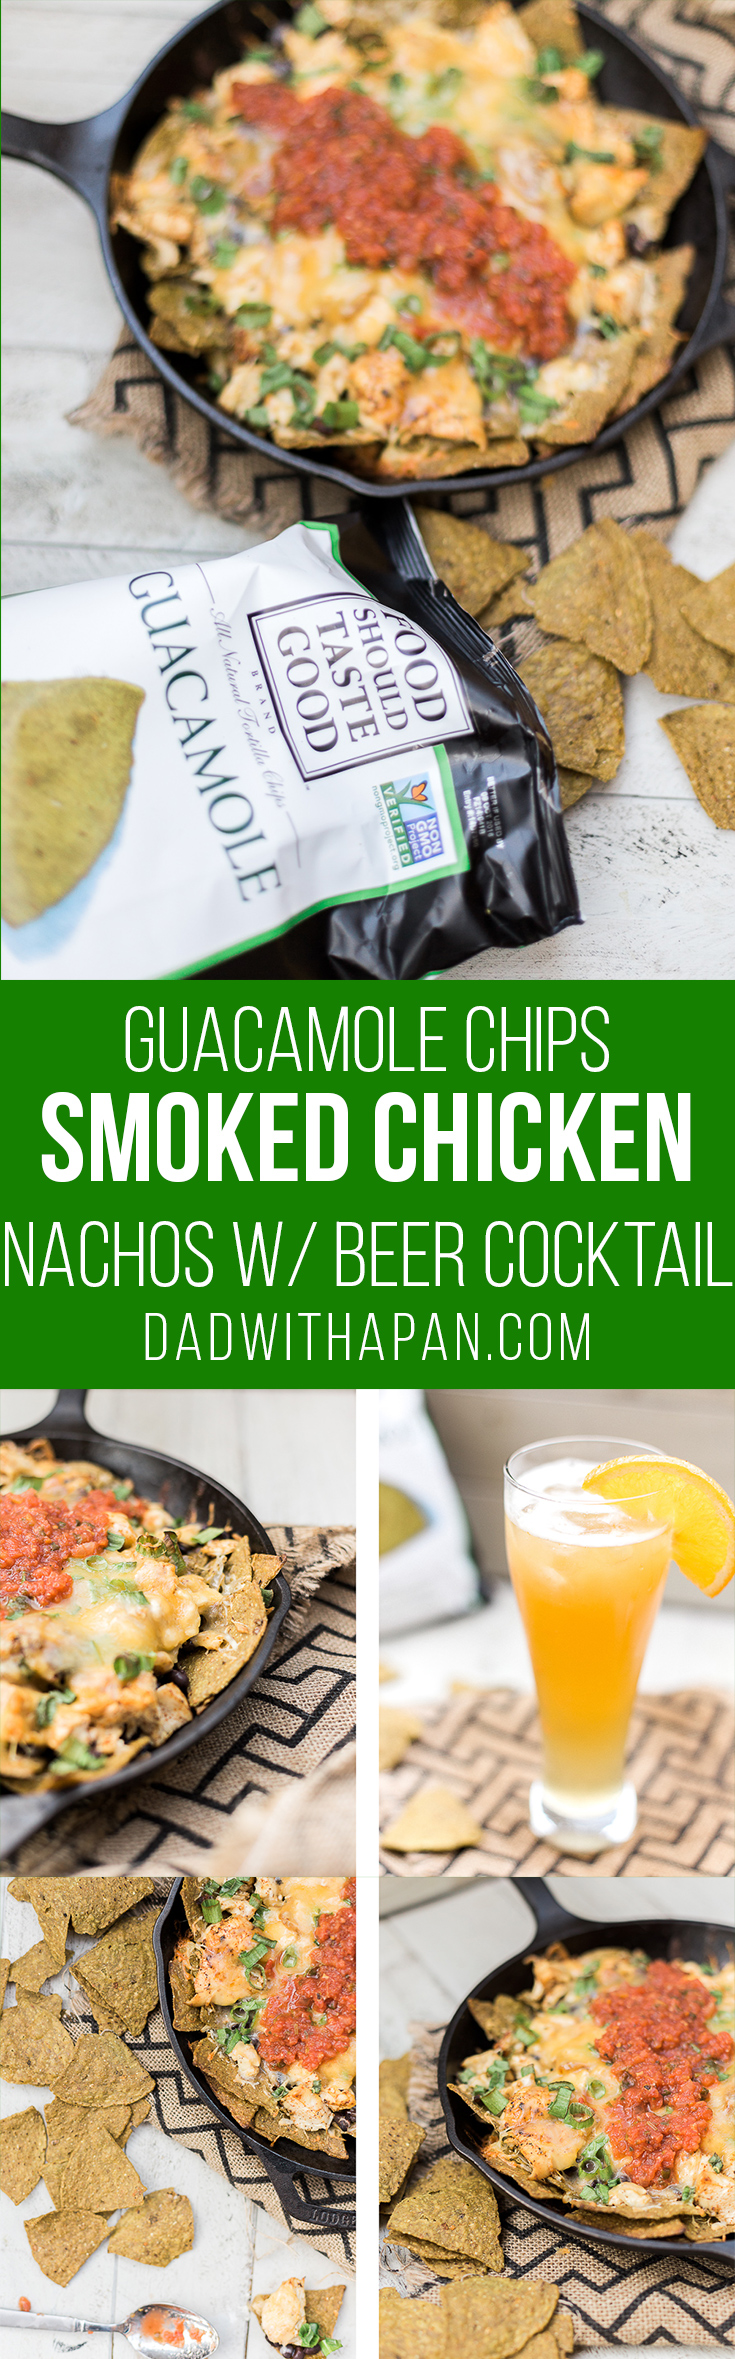 Smoked Chicken Nachos On Tortilla Chips! paire with an Orange Ginger Beer Cocktail! #nachos #smoked #beer